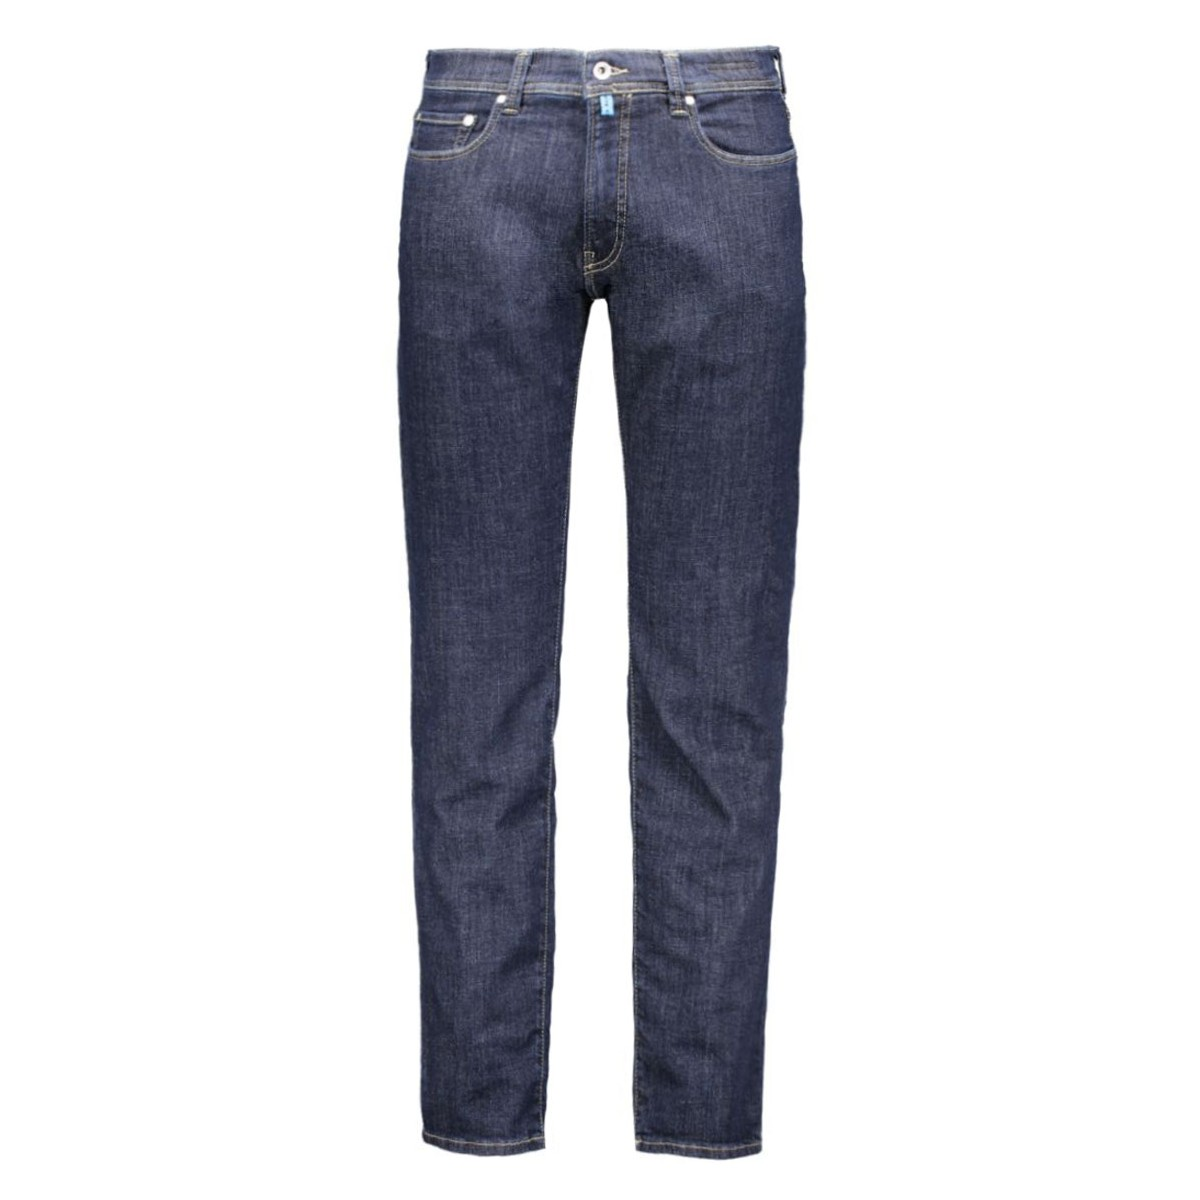 Pierre Cardin grote maat stretch jeans stone washed